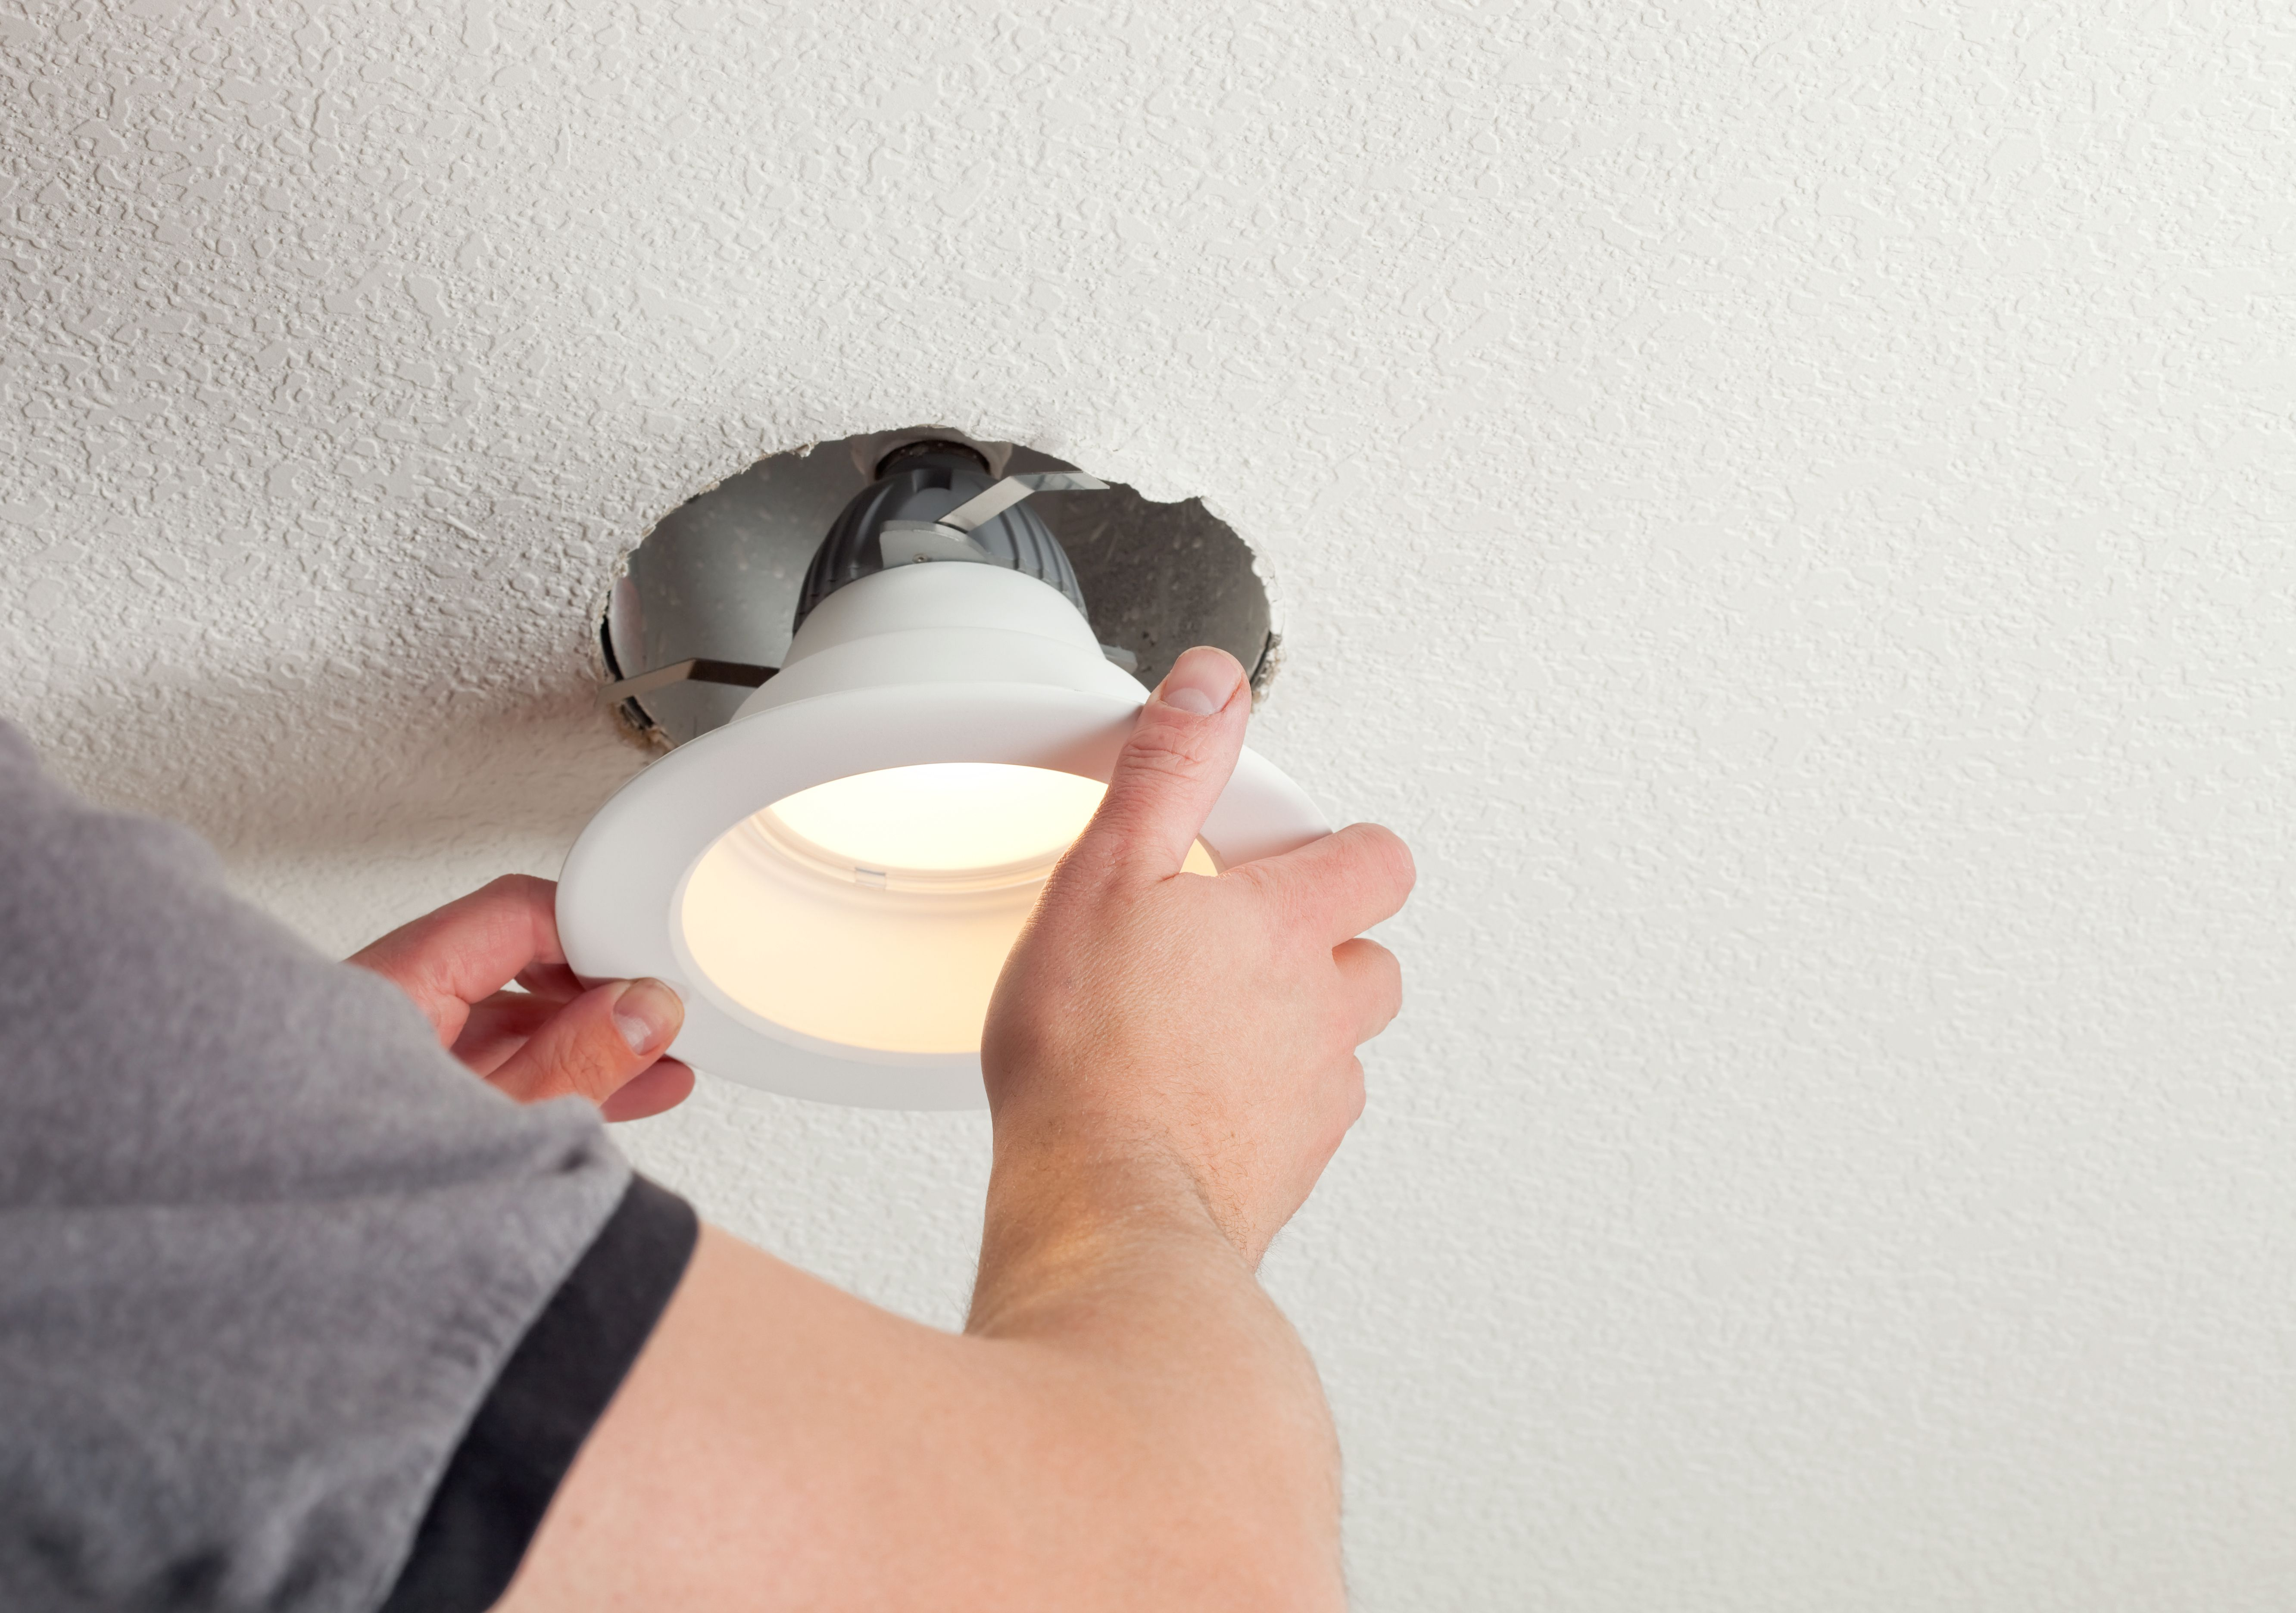 Recessed lighting what are can lights loose lights how to fix recessed lights that fall down arubaitofo Images